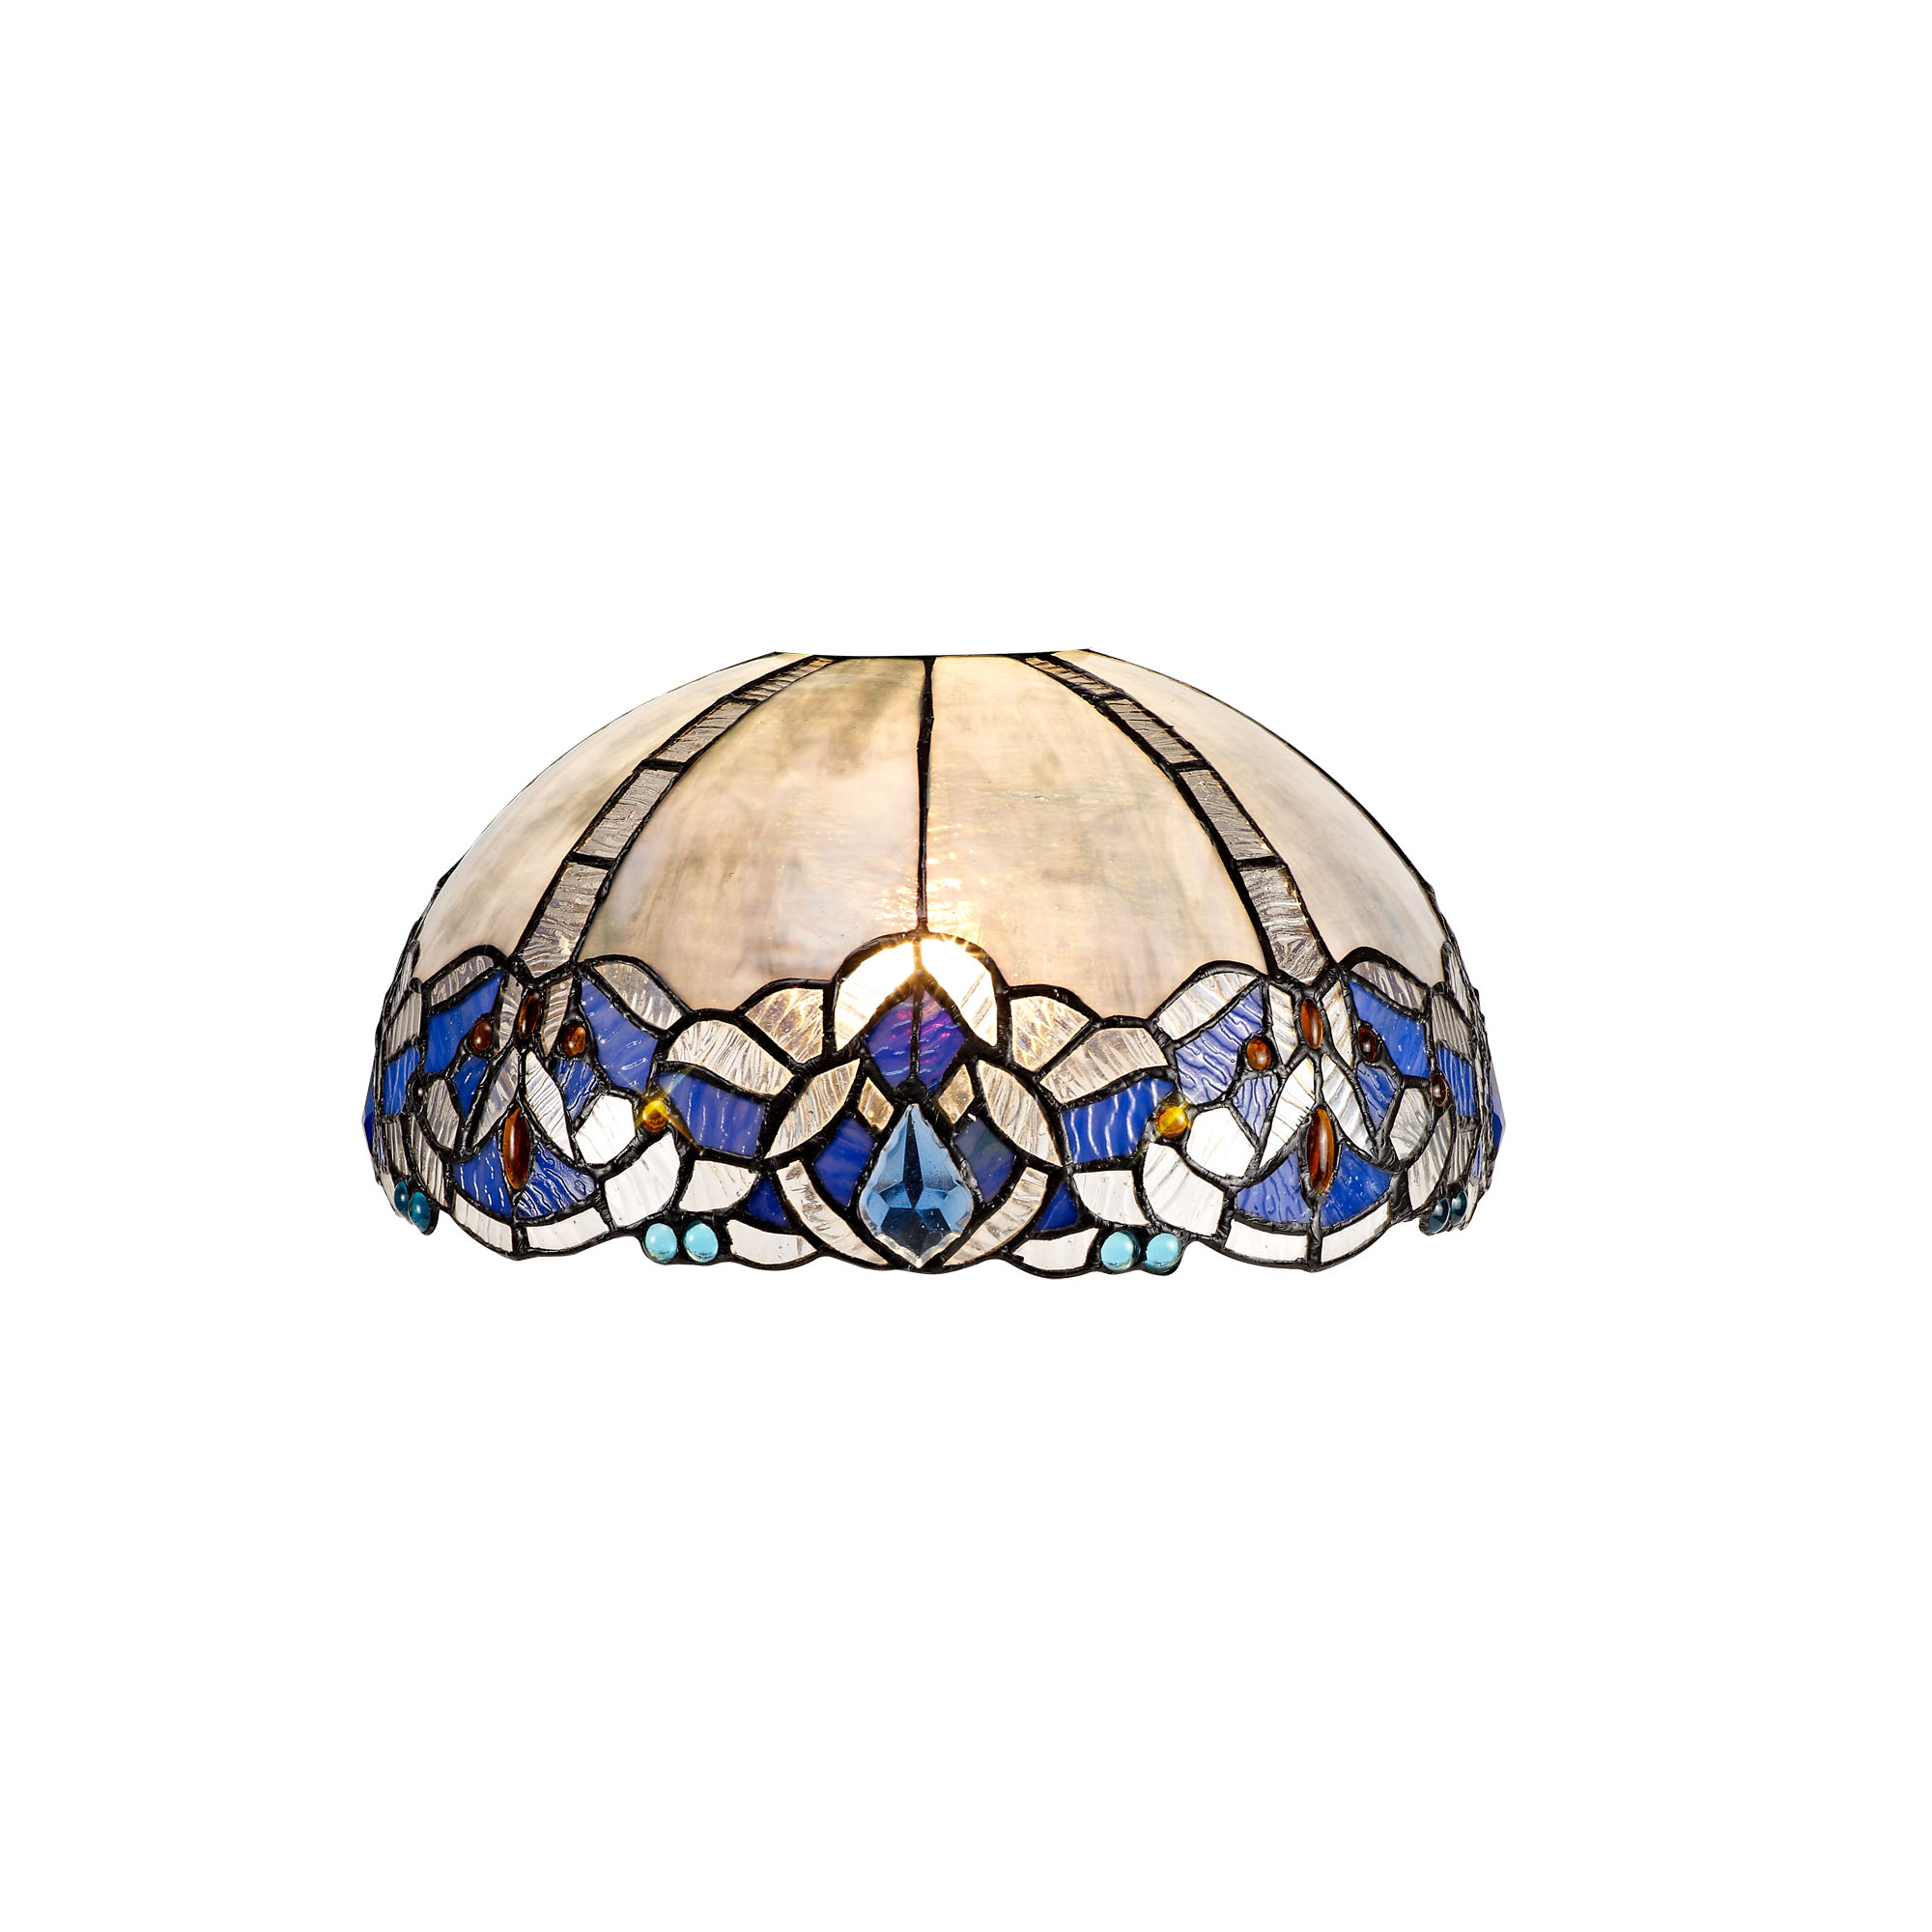 3 Light Semi Ceiling E27 With 30cm Tiffany Shade, Blue/Clear Crystal/Aged Antique Brass